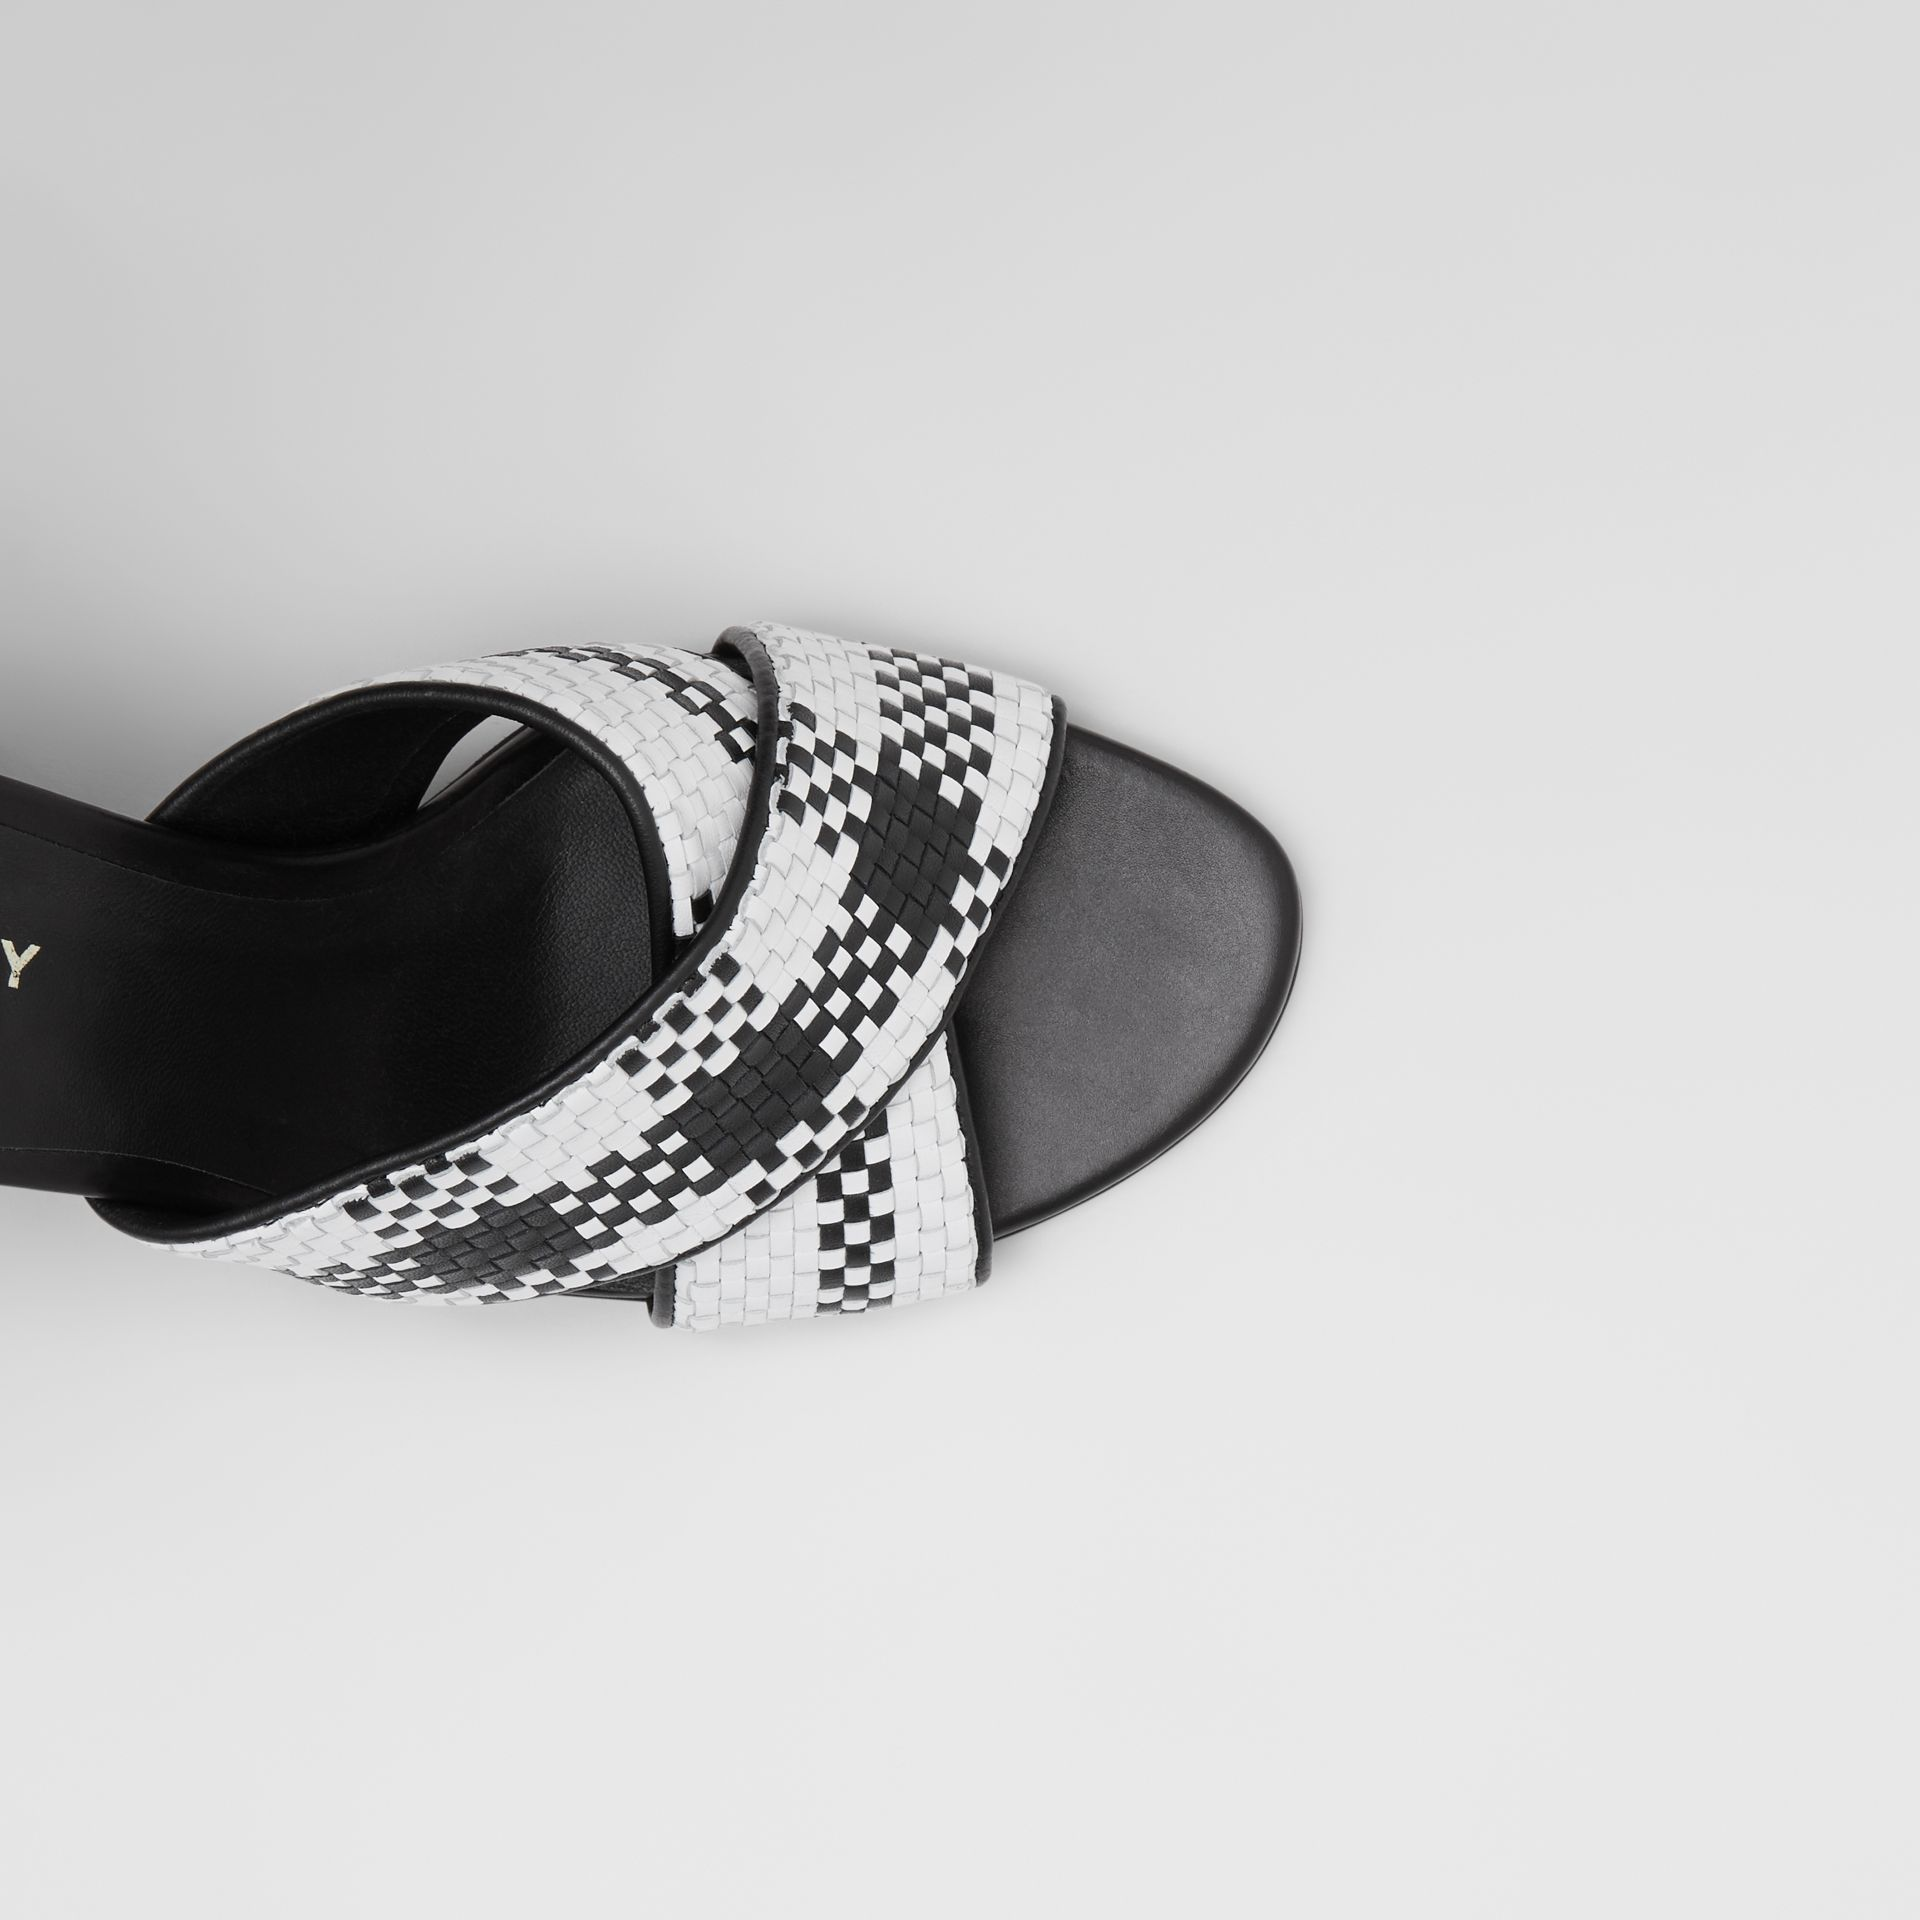 Latticed Leather Block-heel Sandals in Black/white - Women | Burberry Hong Kong S.A.R - gallery image 1